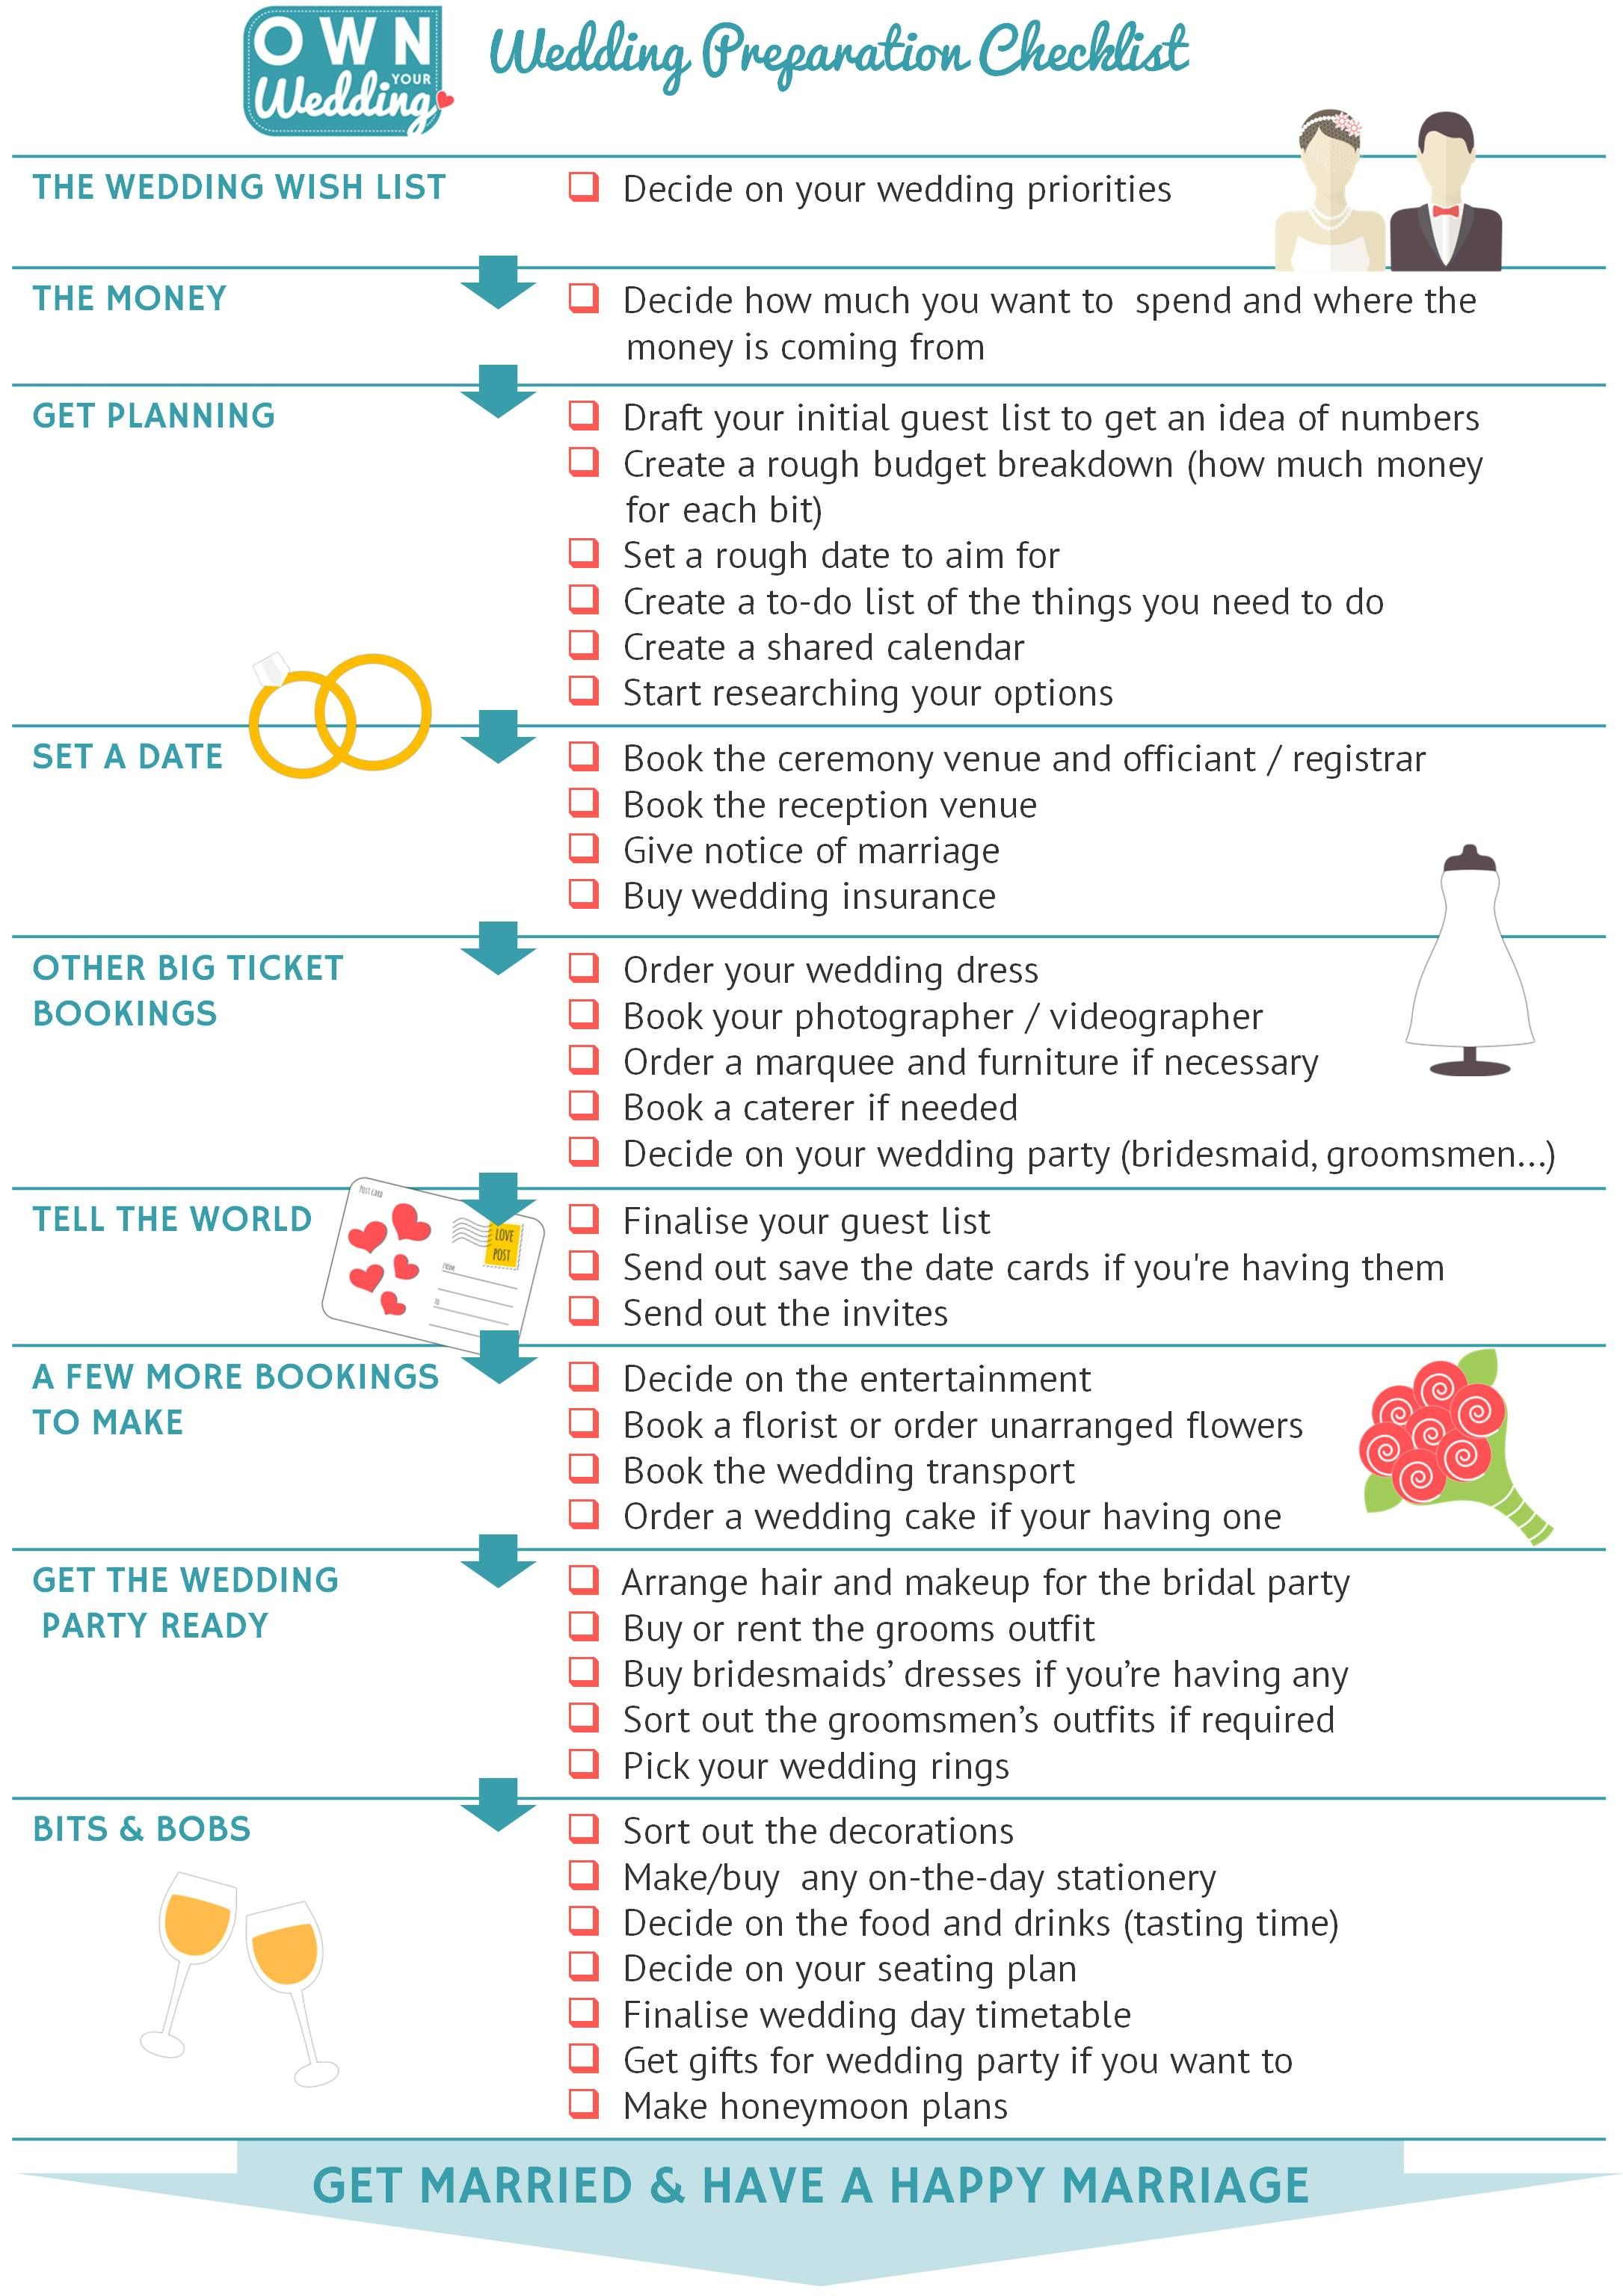 Free Wedding Preparation Checklist To Guide You Through The Steps Of Planning Your Own